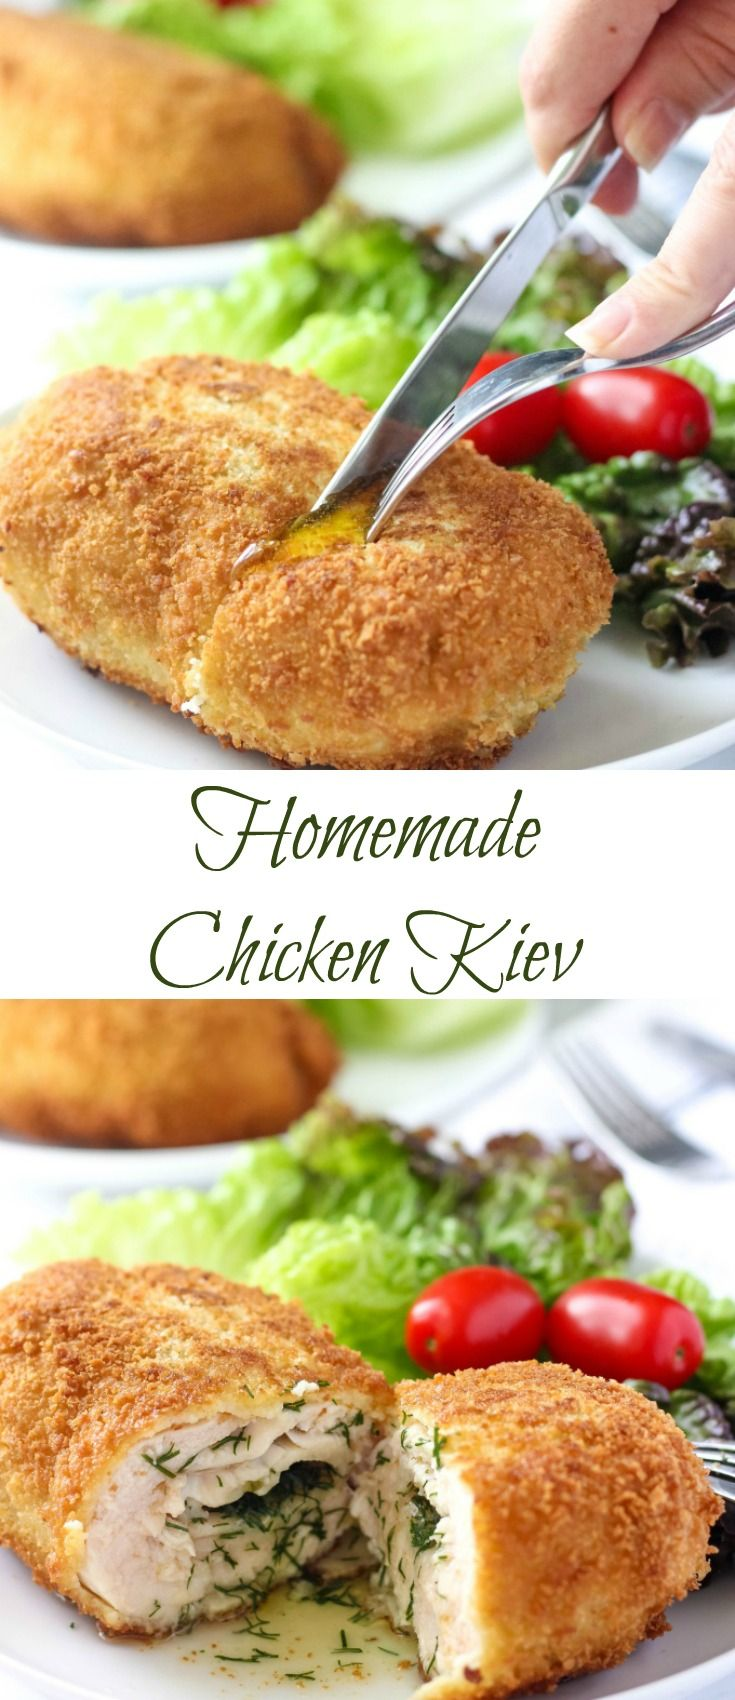 Homemade Chicken Kiev Chicken Kiev Recipechicken